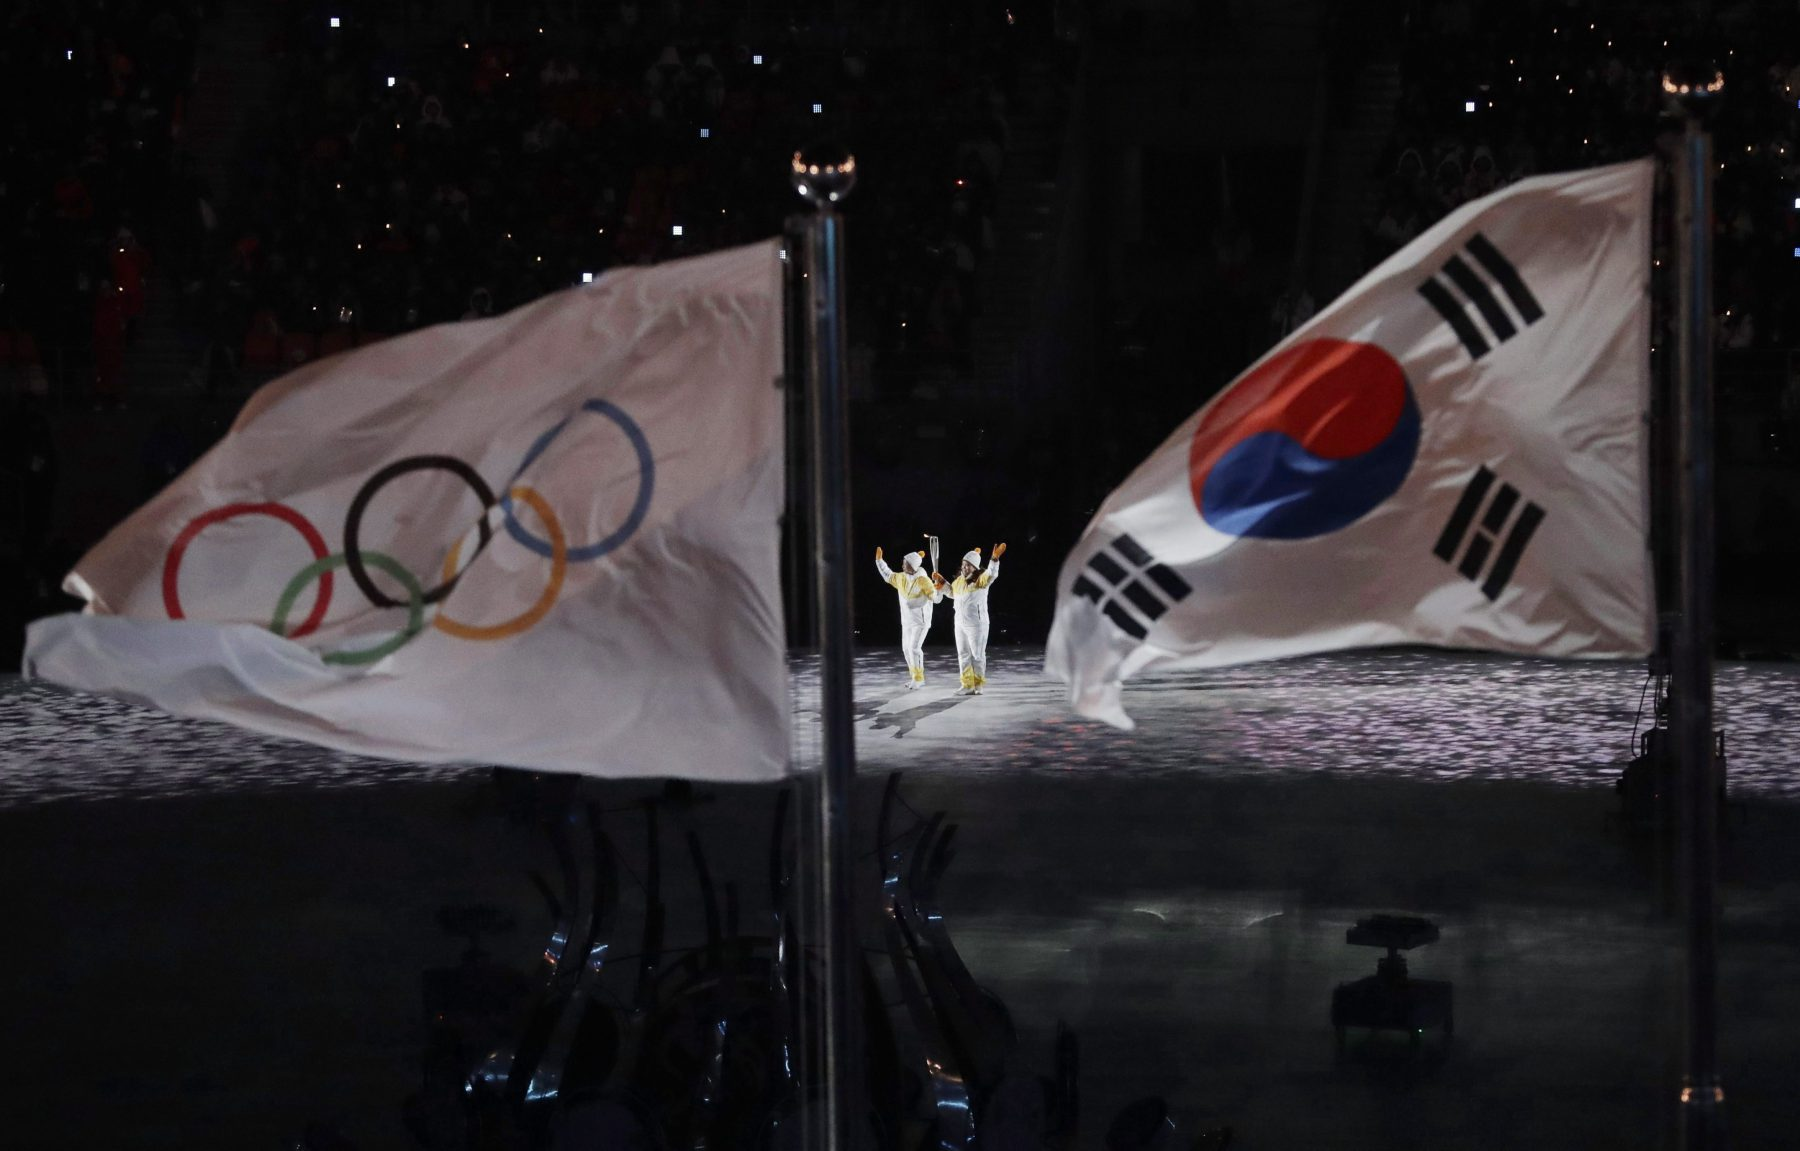 The Olympic torch is carried into the stadium during the opening ceremony of the 2018 Olympic Winter Games